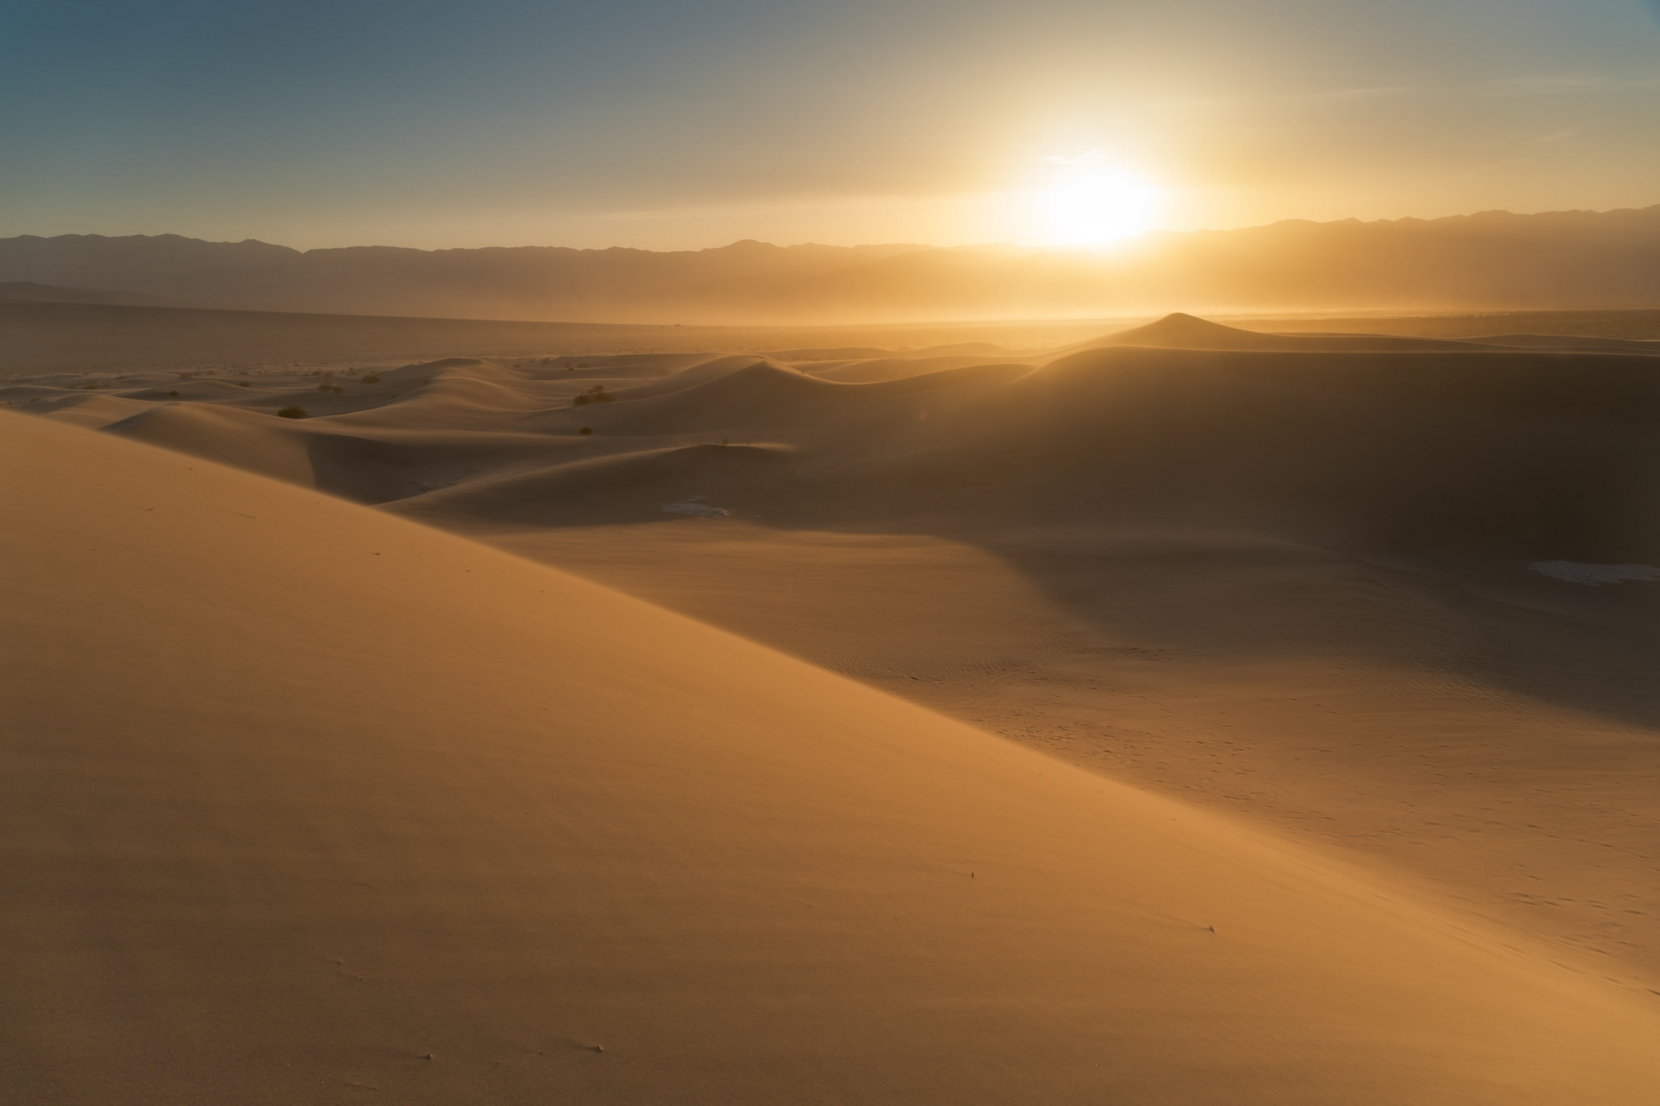 Mesquite Dunes is so photogenic, with amazing opportunities in the best of light.